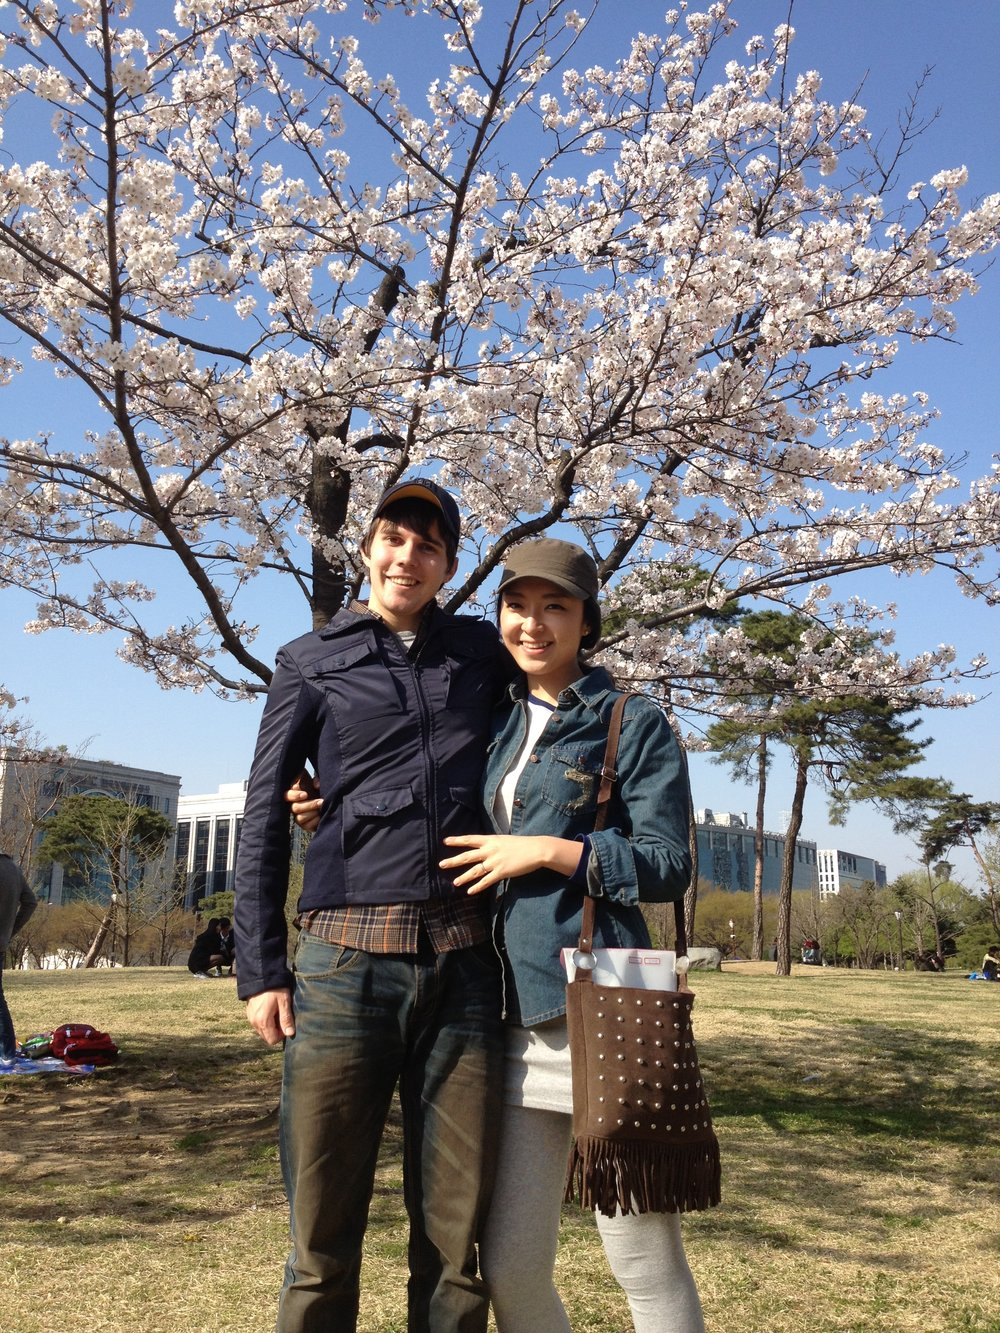 My wife and I at a parklands in Seoul, Korea